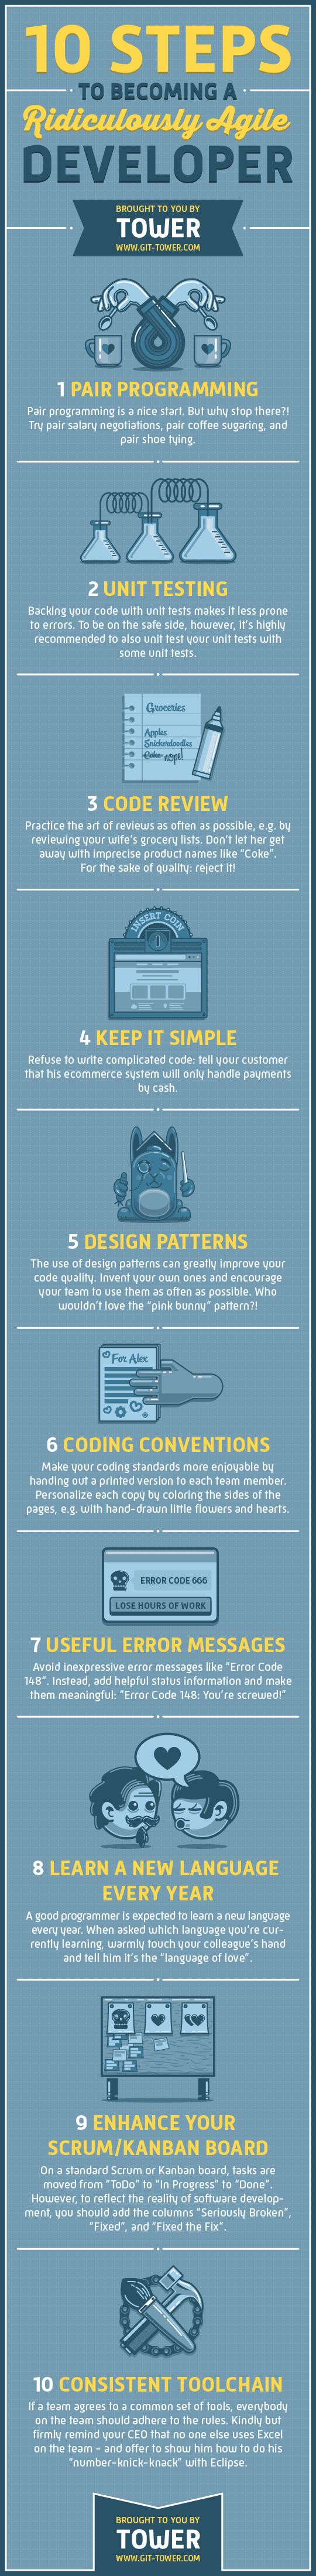 10 Steps to Becoming a Ridiculously #Agile #Developer   Infographic by @gittower